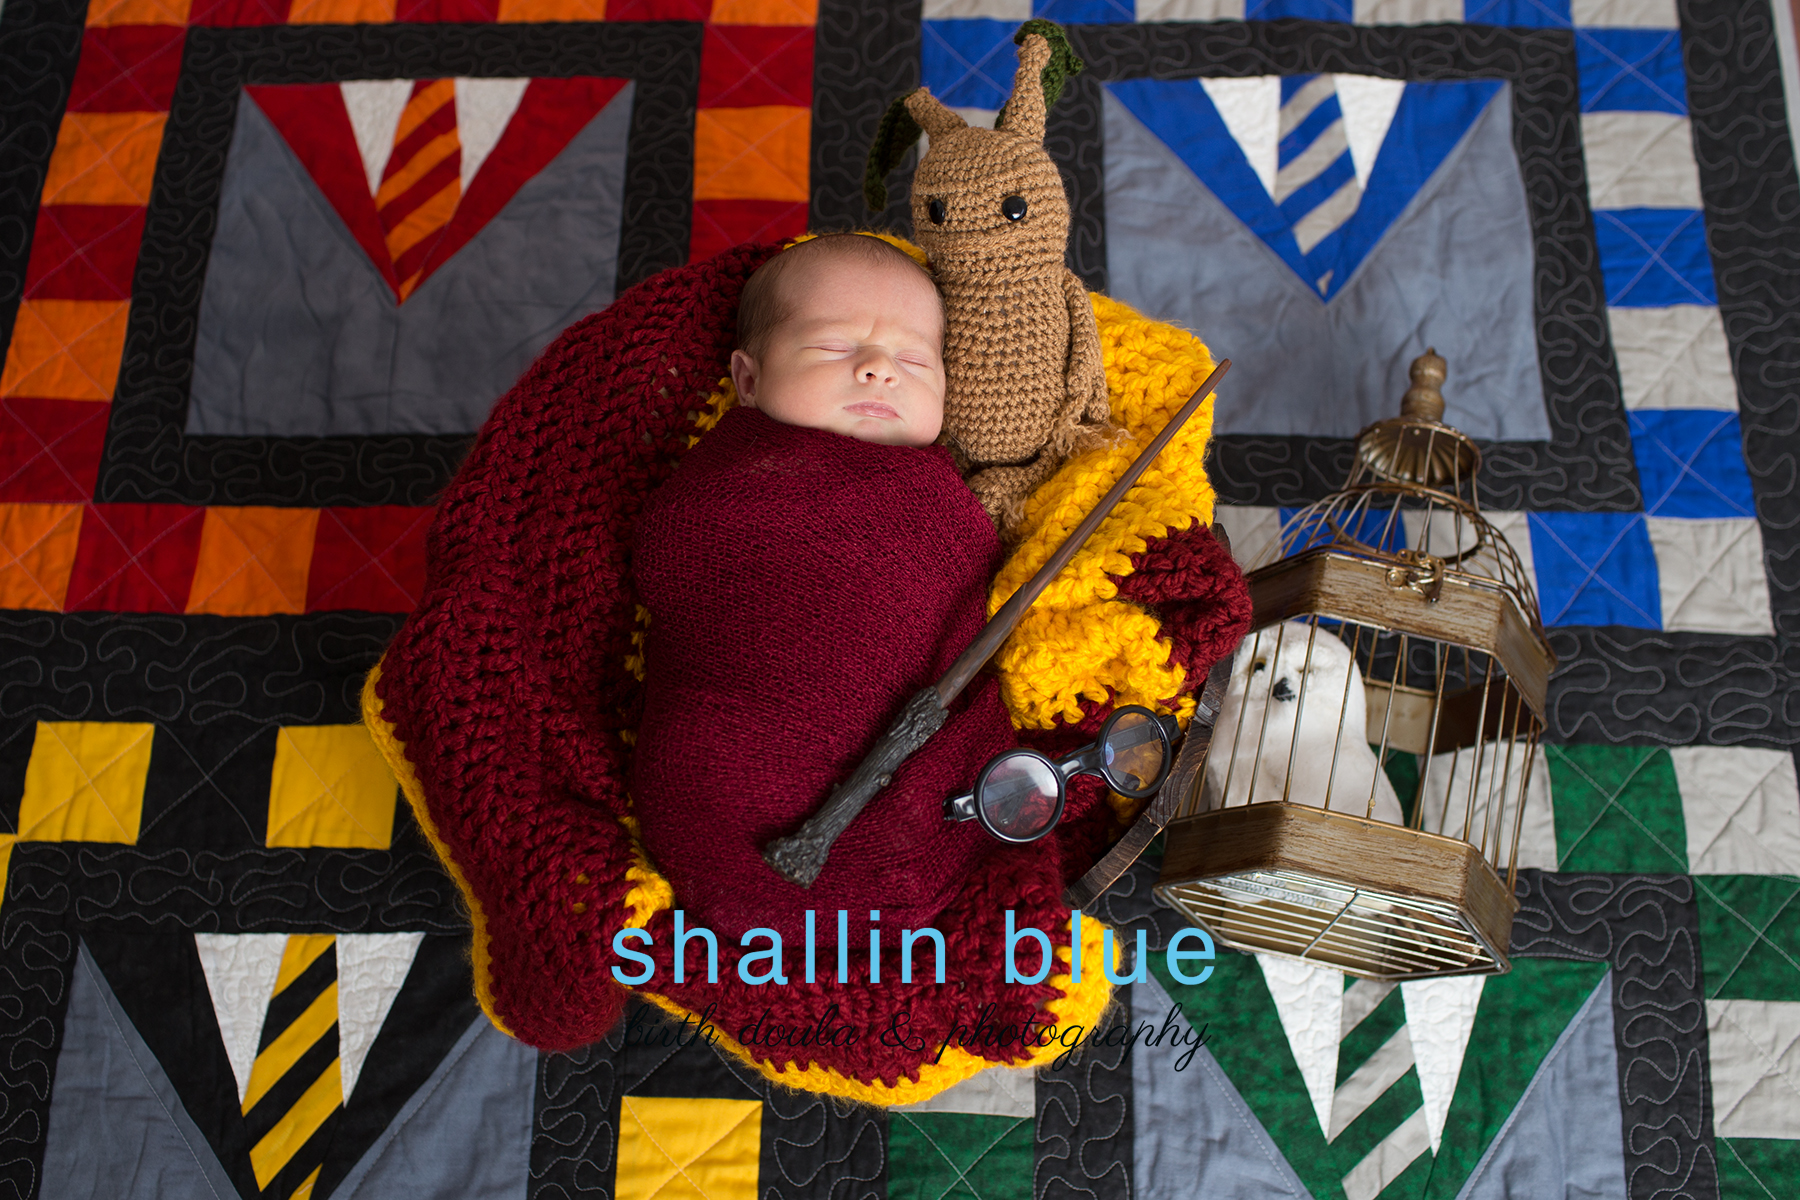 harrypotternewbornhawaii.jpg